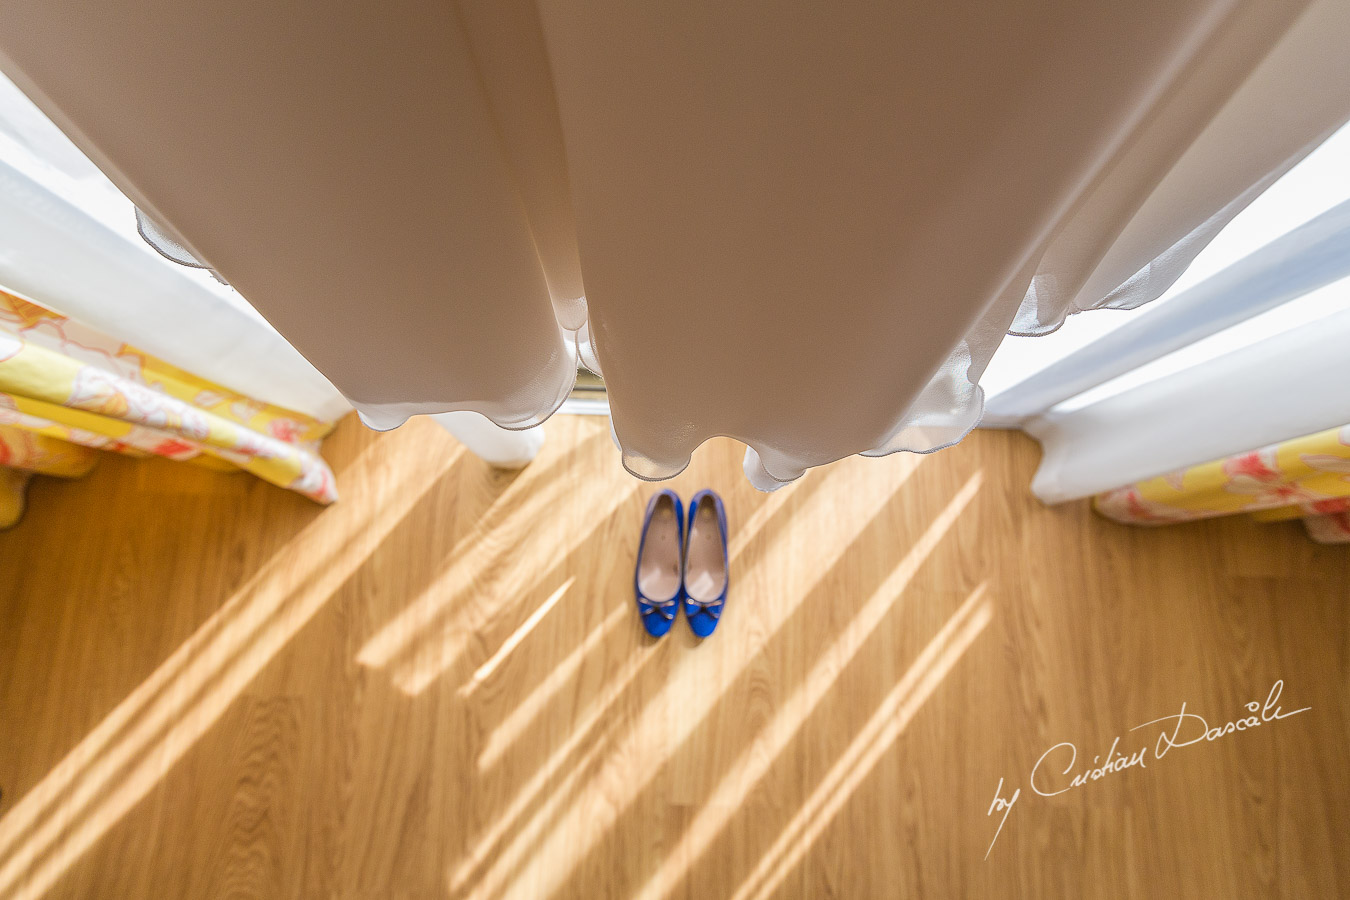 Artistic composition for Wedding Photography at Elias Beach Hotel in Limassol